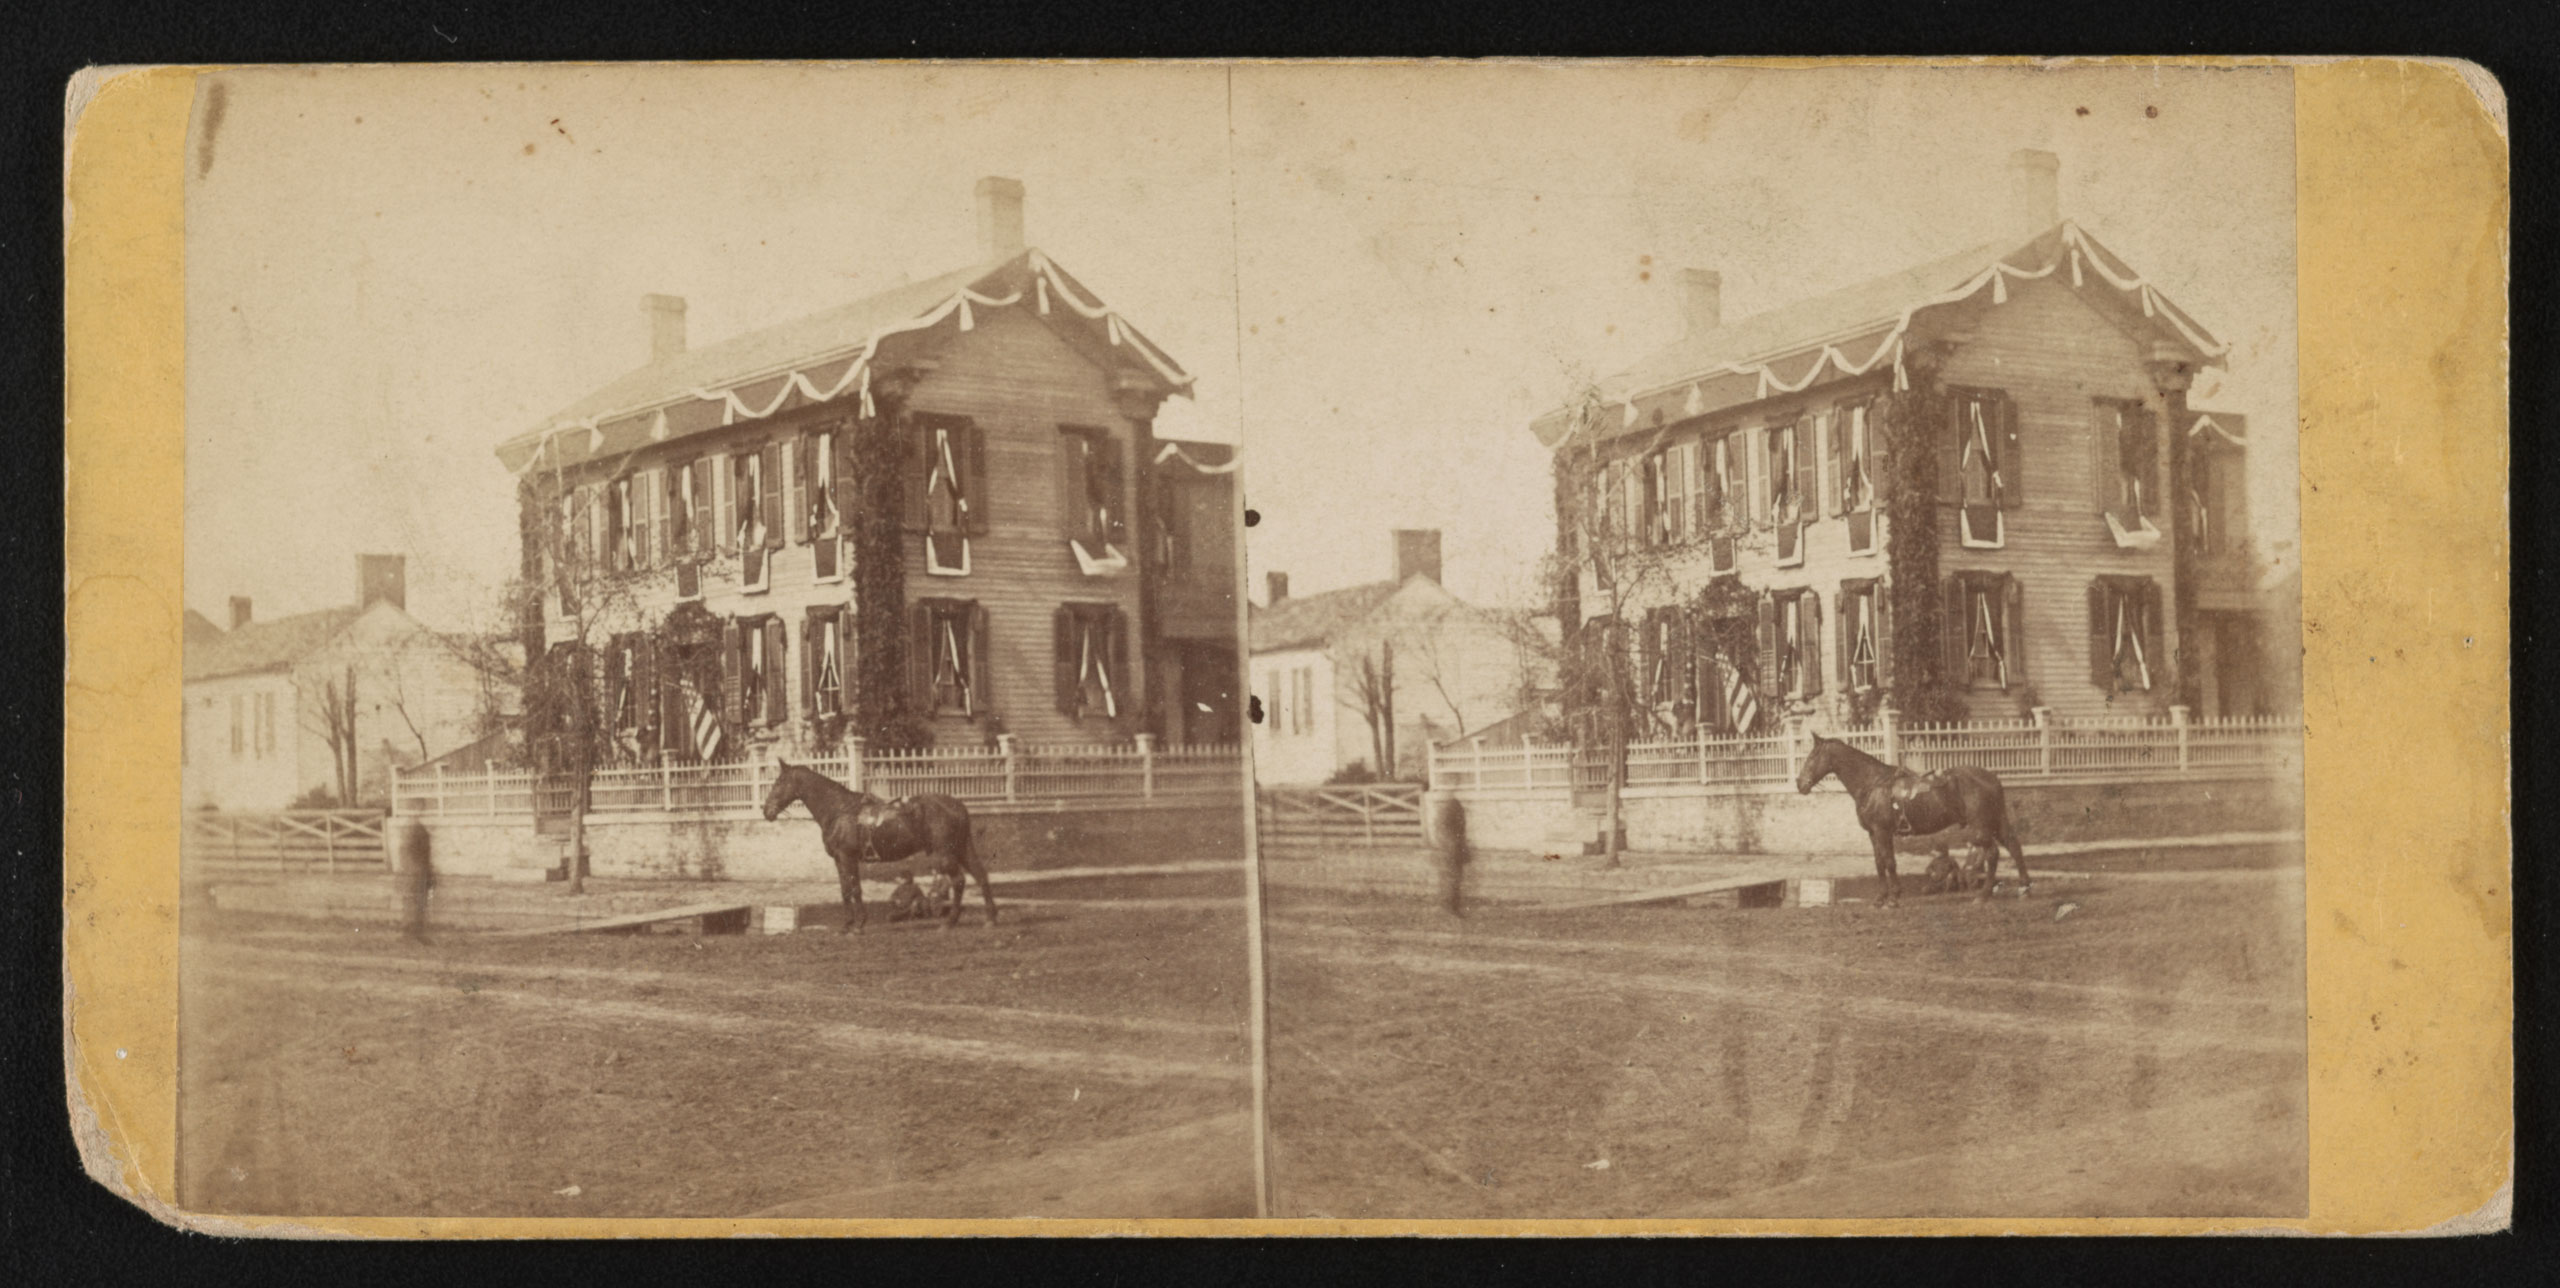 A street view of Abraham Lincoln's home in Springfield, Ill. draped in mourning on the day of his funeral. A horse stands near a wooden plank from the street to the sidewalk, circa 1865.